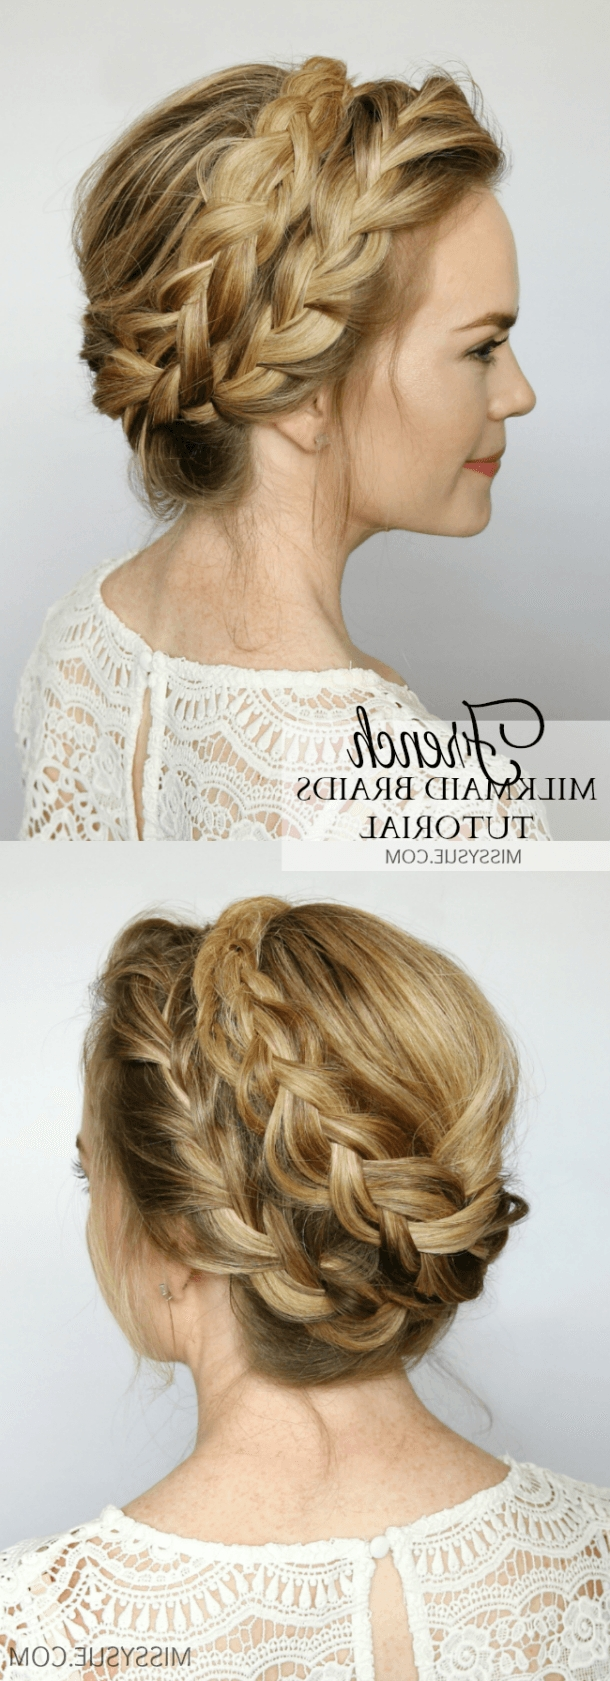 French Milkmaid Braids | Milkmaid Braid, Updo And Tutorials In Braided Crown Updo Hairstyles (View 6 of 15)